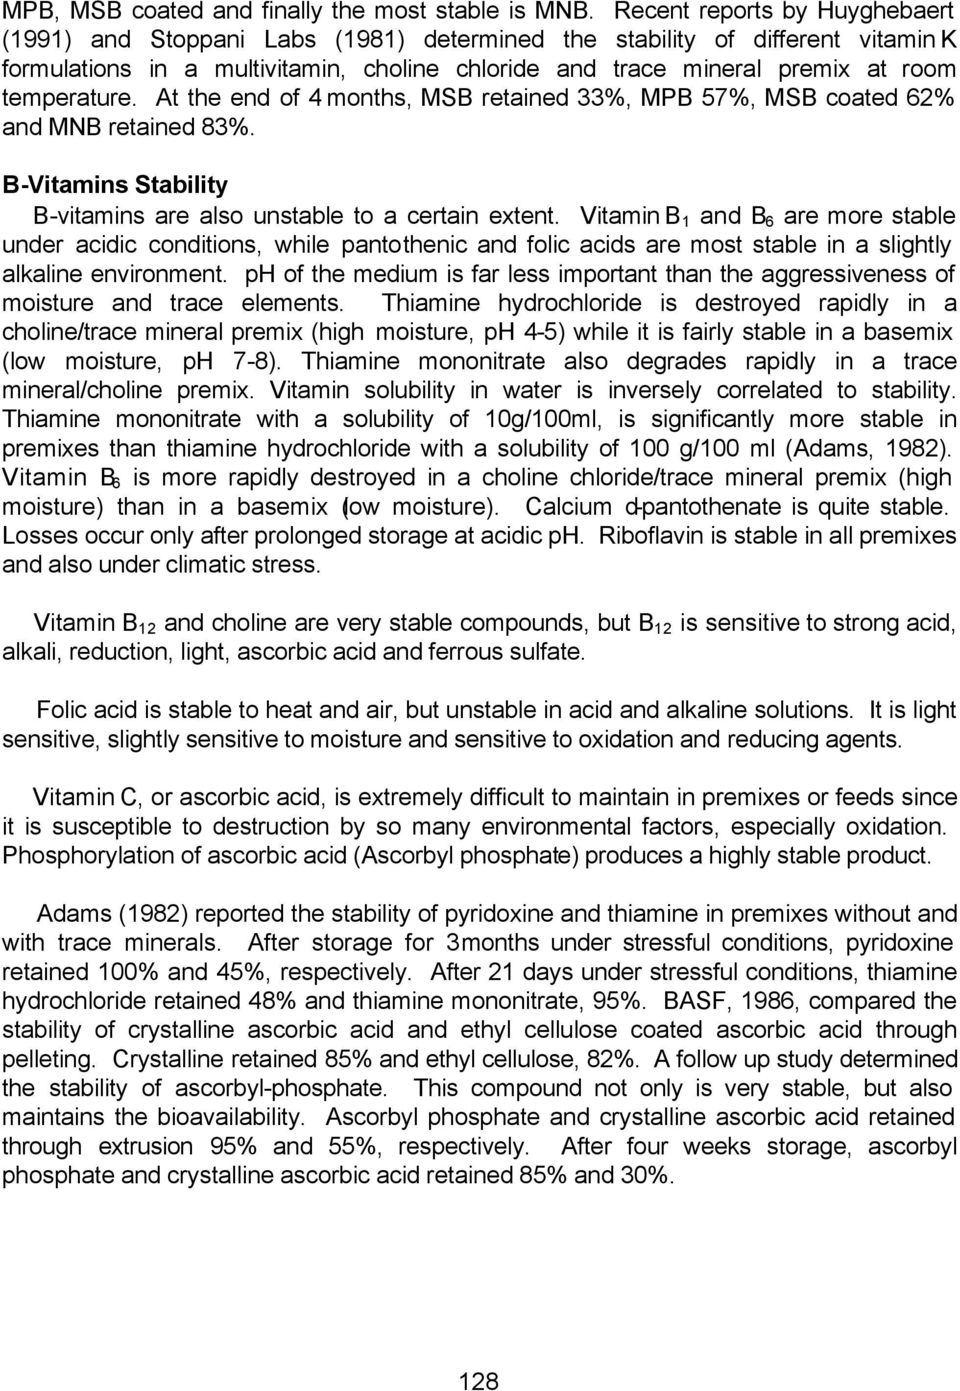 Vitamin Stability in Premixes and Feeds A Practical Approach in